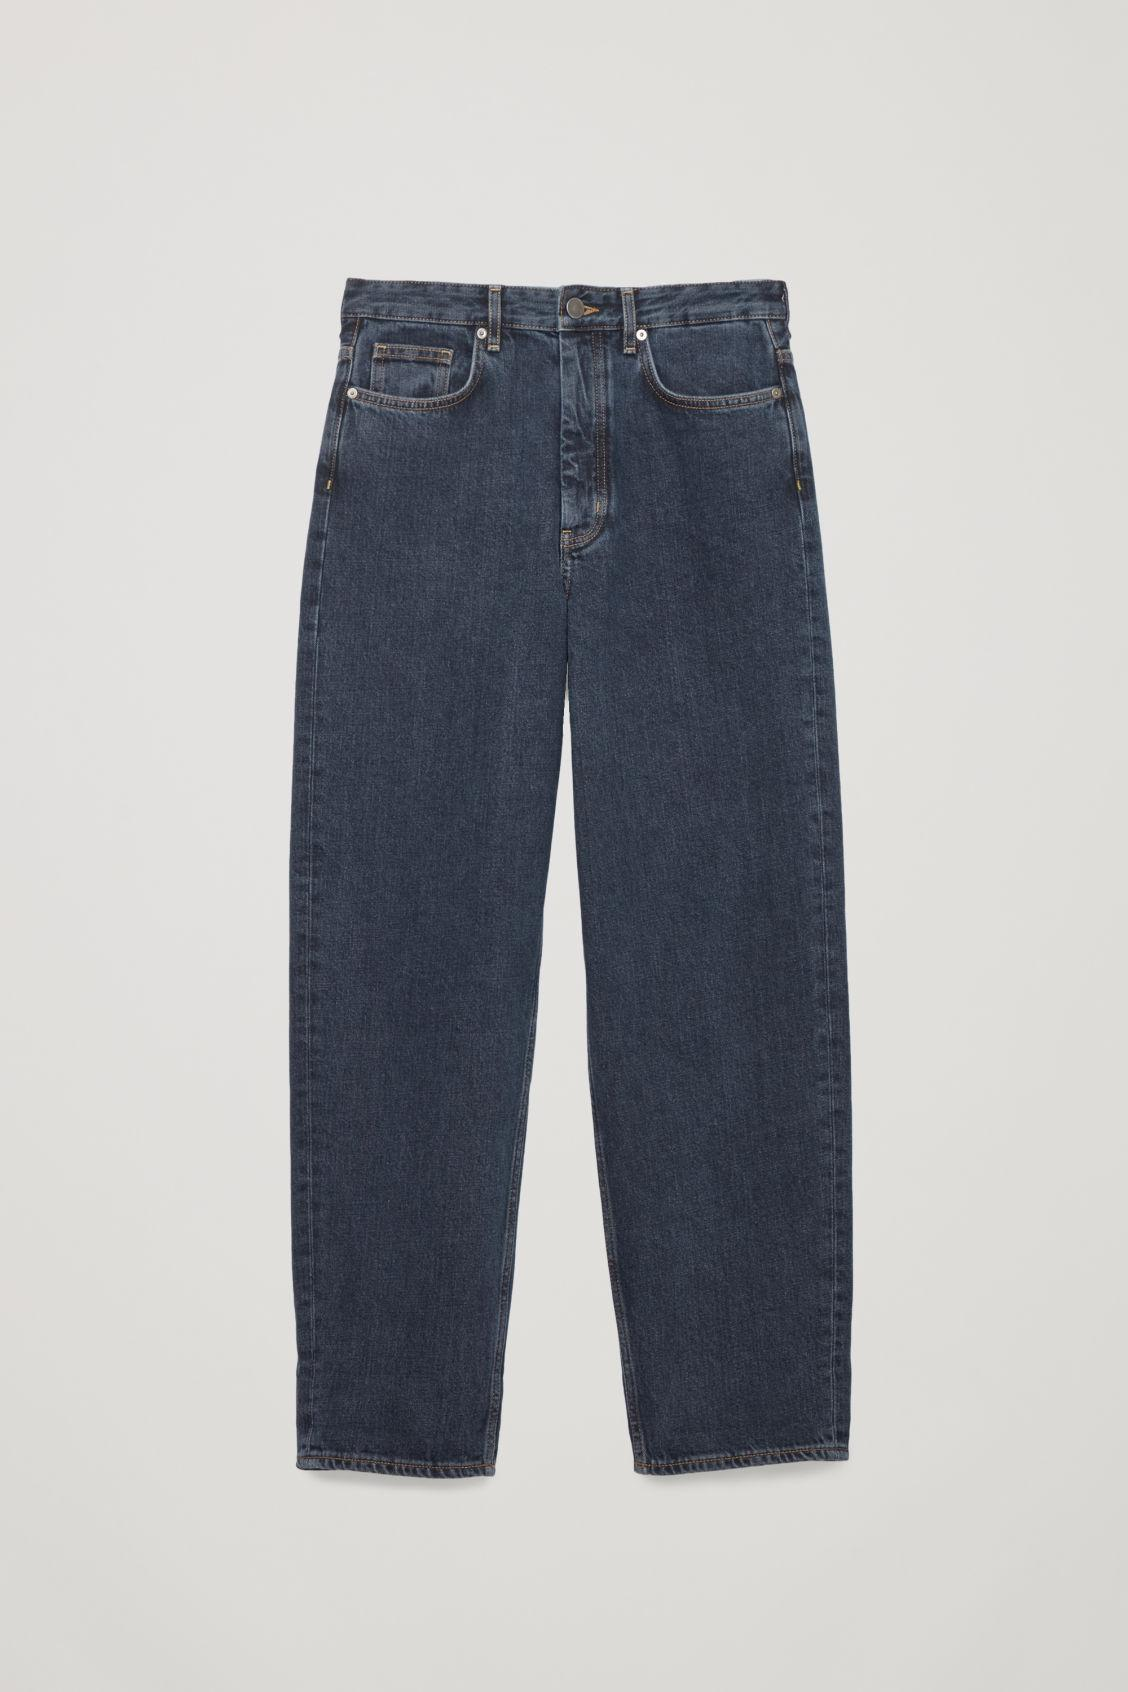 4ab7d33a1a9 Lyst - Cos Tapered Leg Jeans in Blue